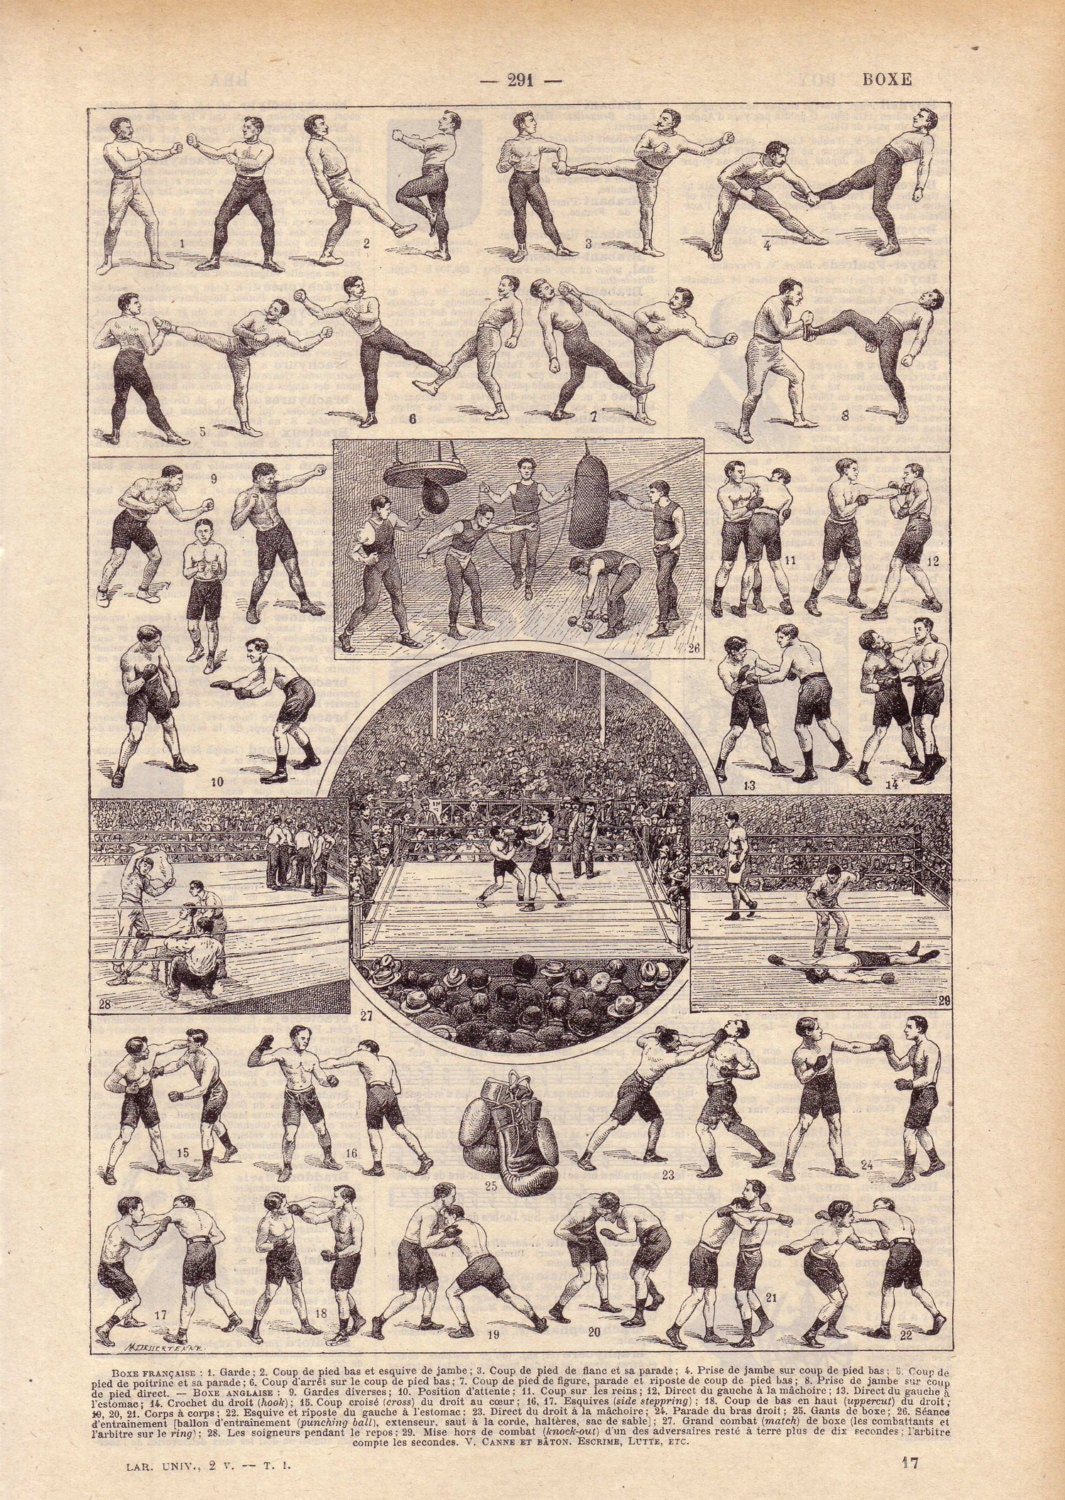 1922 Vintage Boxing French Dictionary Illustration